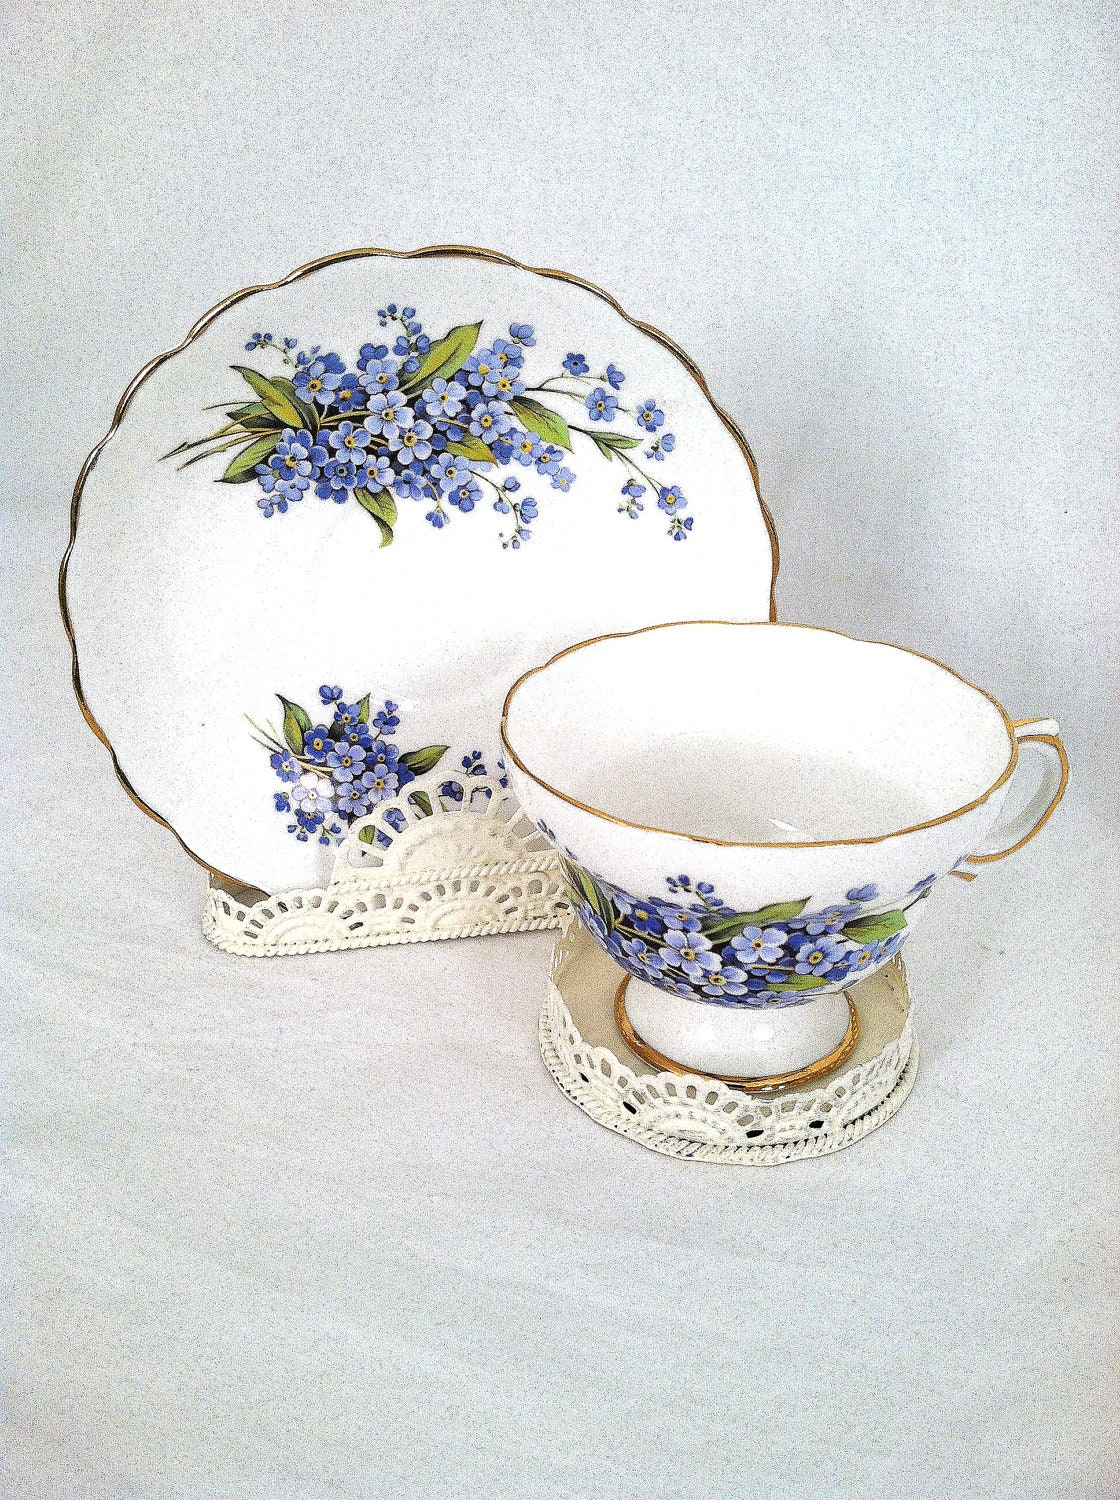 Tea Cup And Saucer Stand Holder Display By Mariasfarmhouse